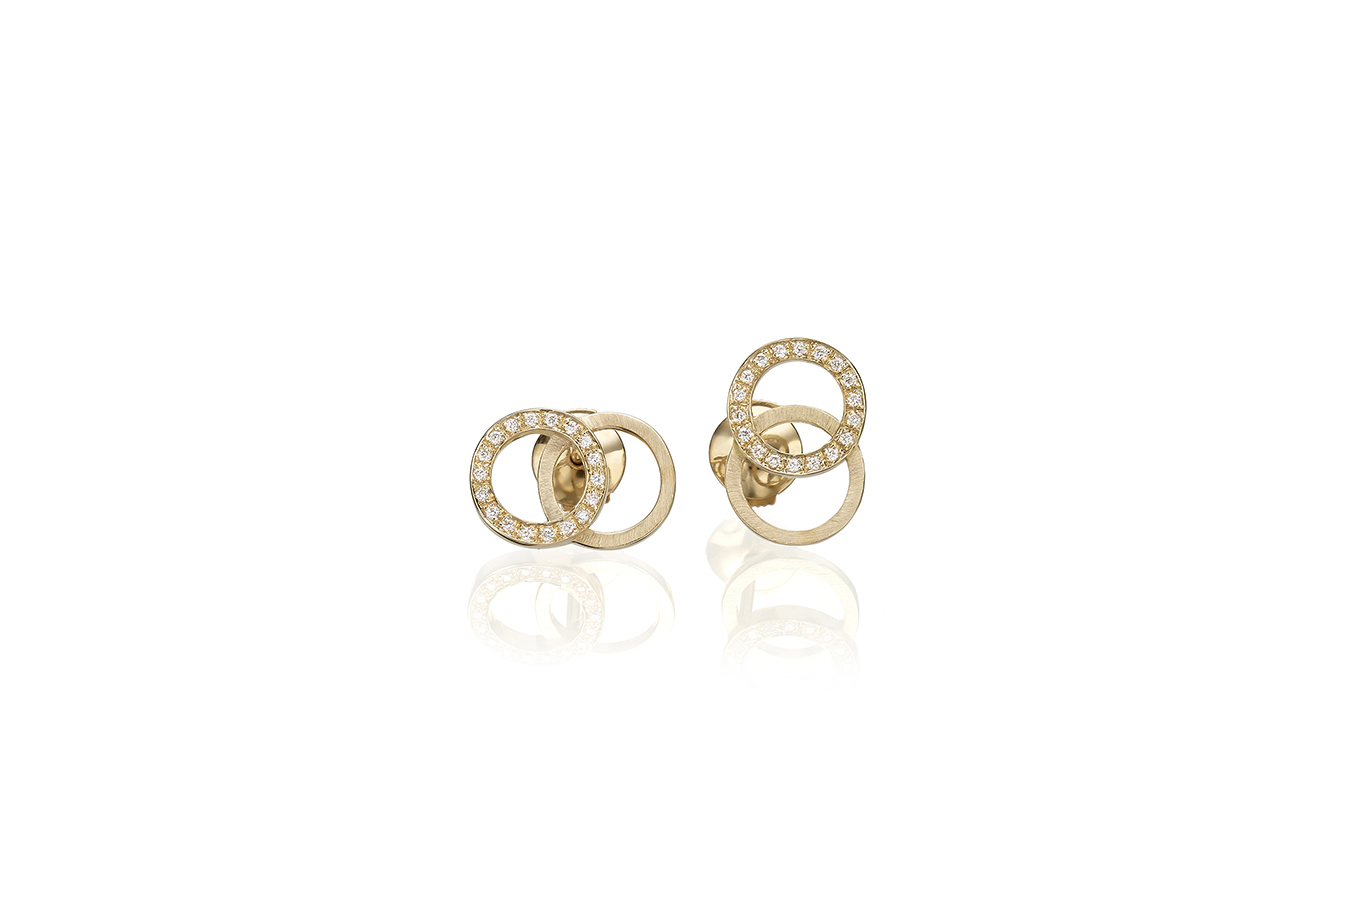 CIRCULAR B EARRINGS 18K YELLOW GOLD 0.20 CT DIAMONDS